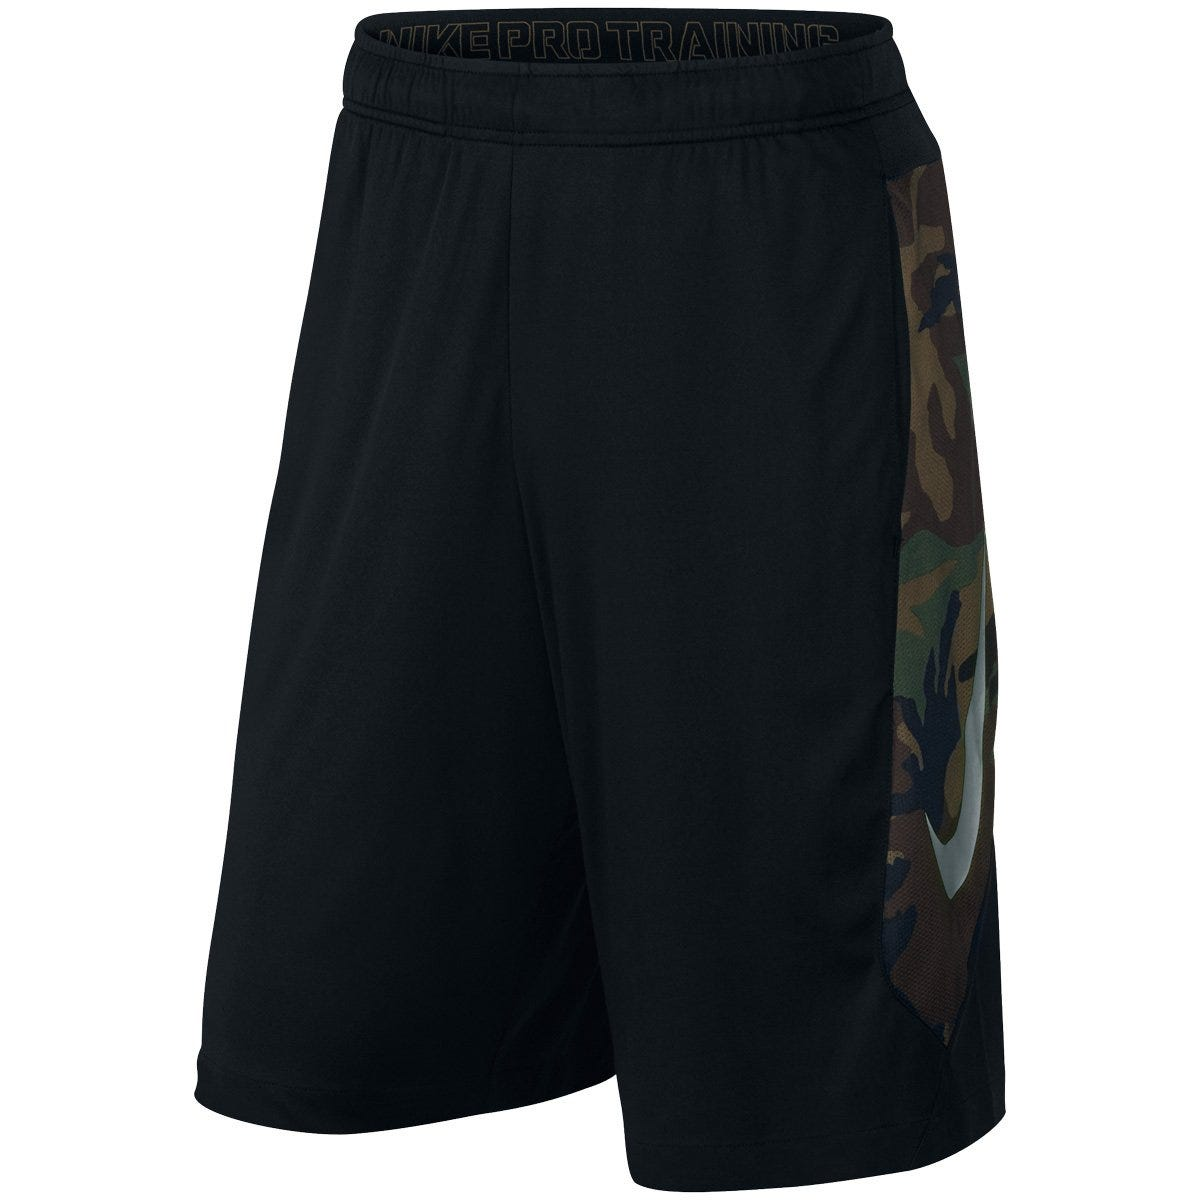 Hyperspeed Knit Camo Sr. Training Shorts - White/Black by Nike